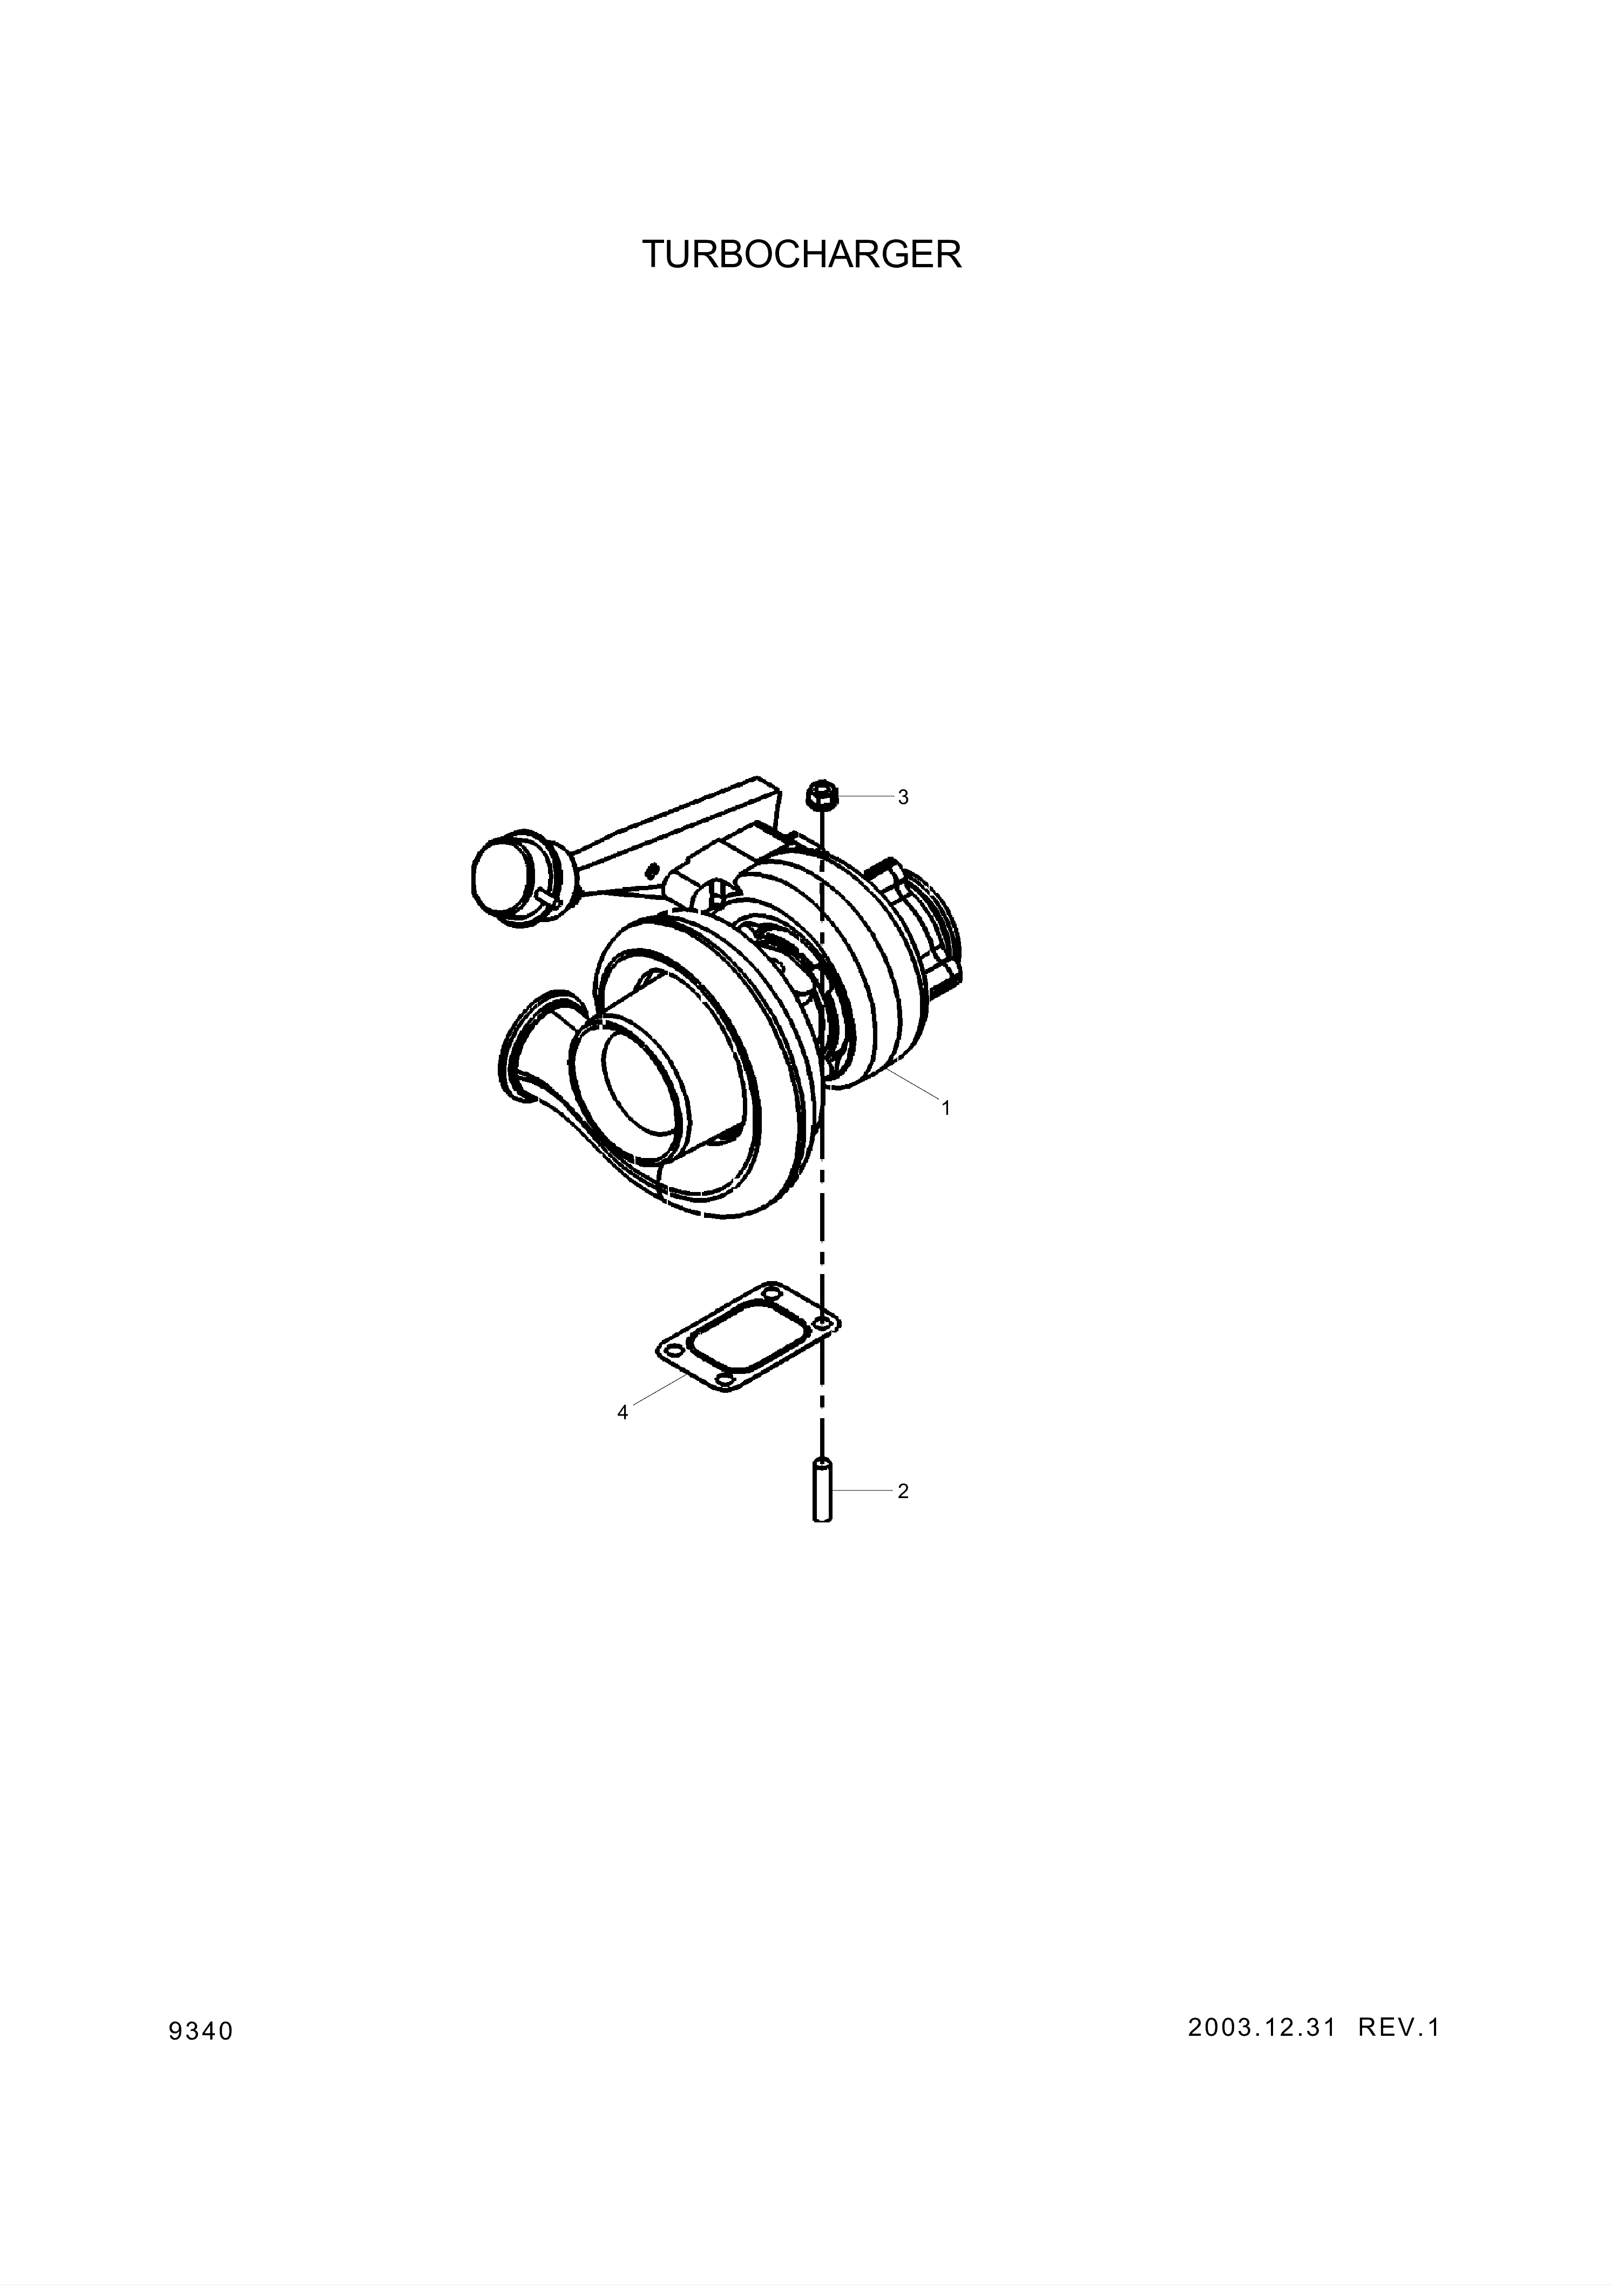 drawing for Hyundai Construction Equipment 3596633 - TURBOCHARGER